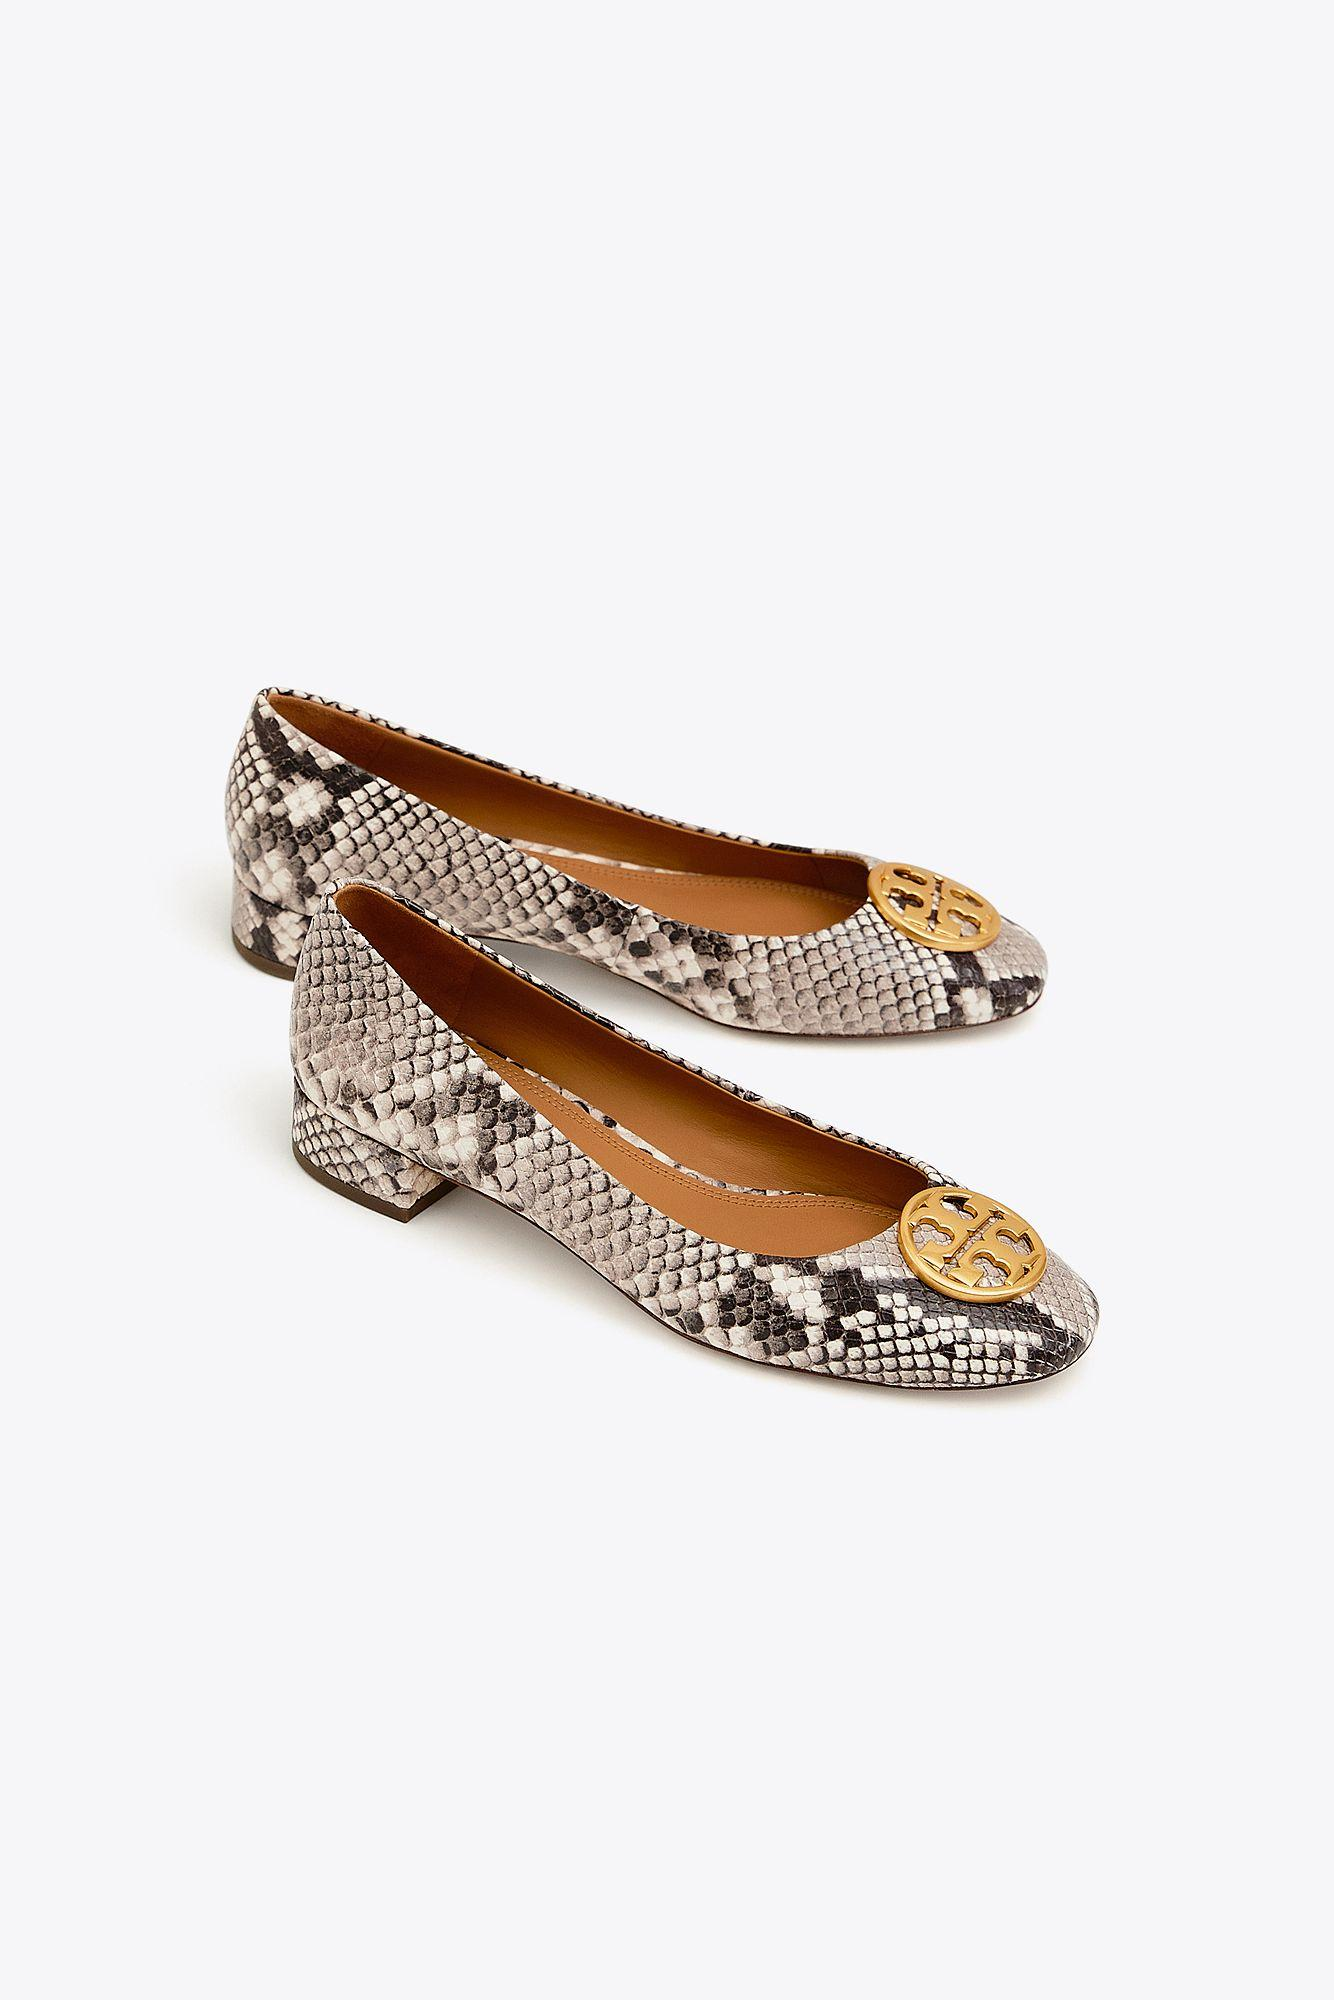 Tory Burch Leather Chelsea Embossed